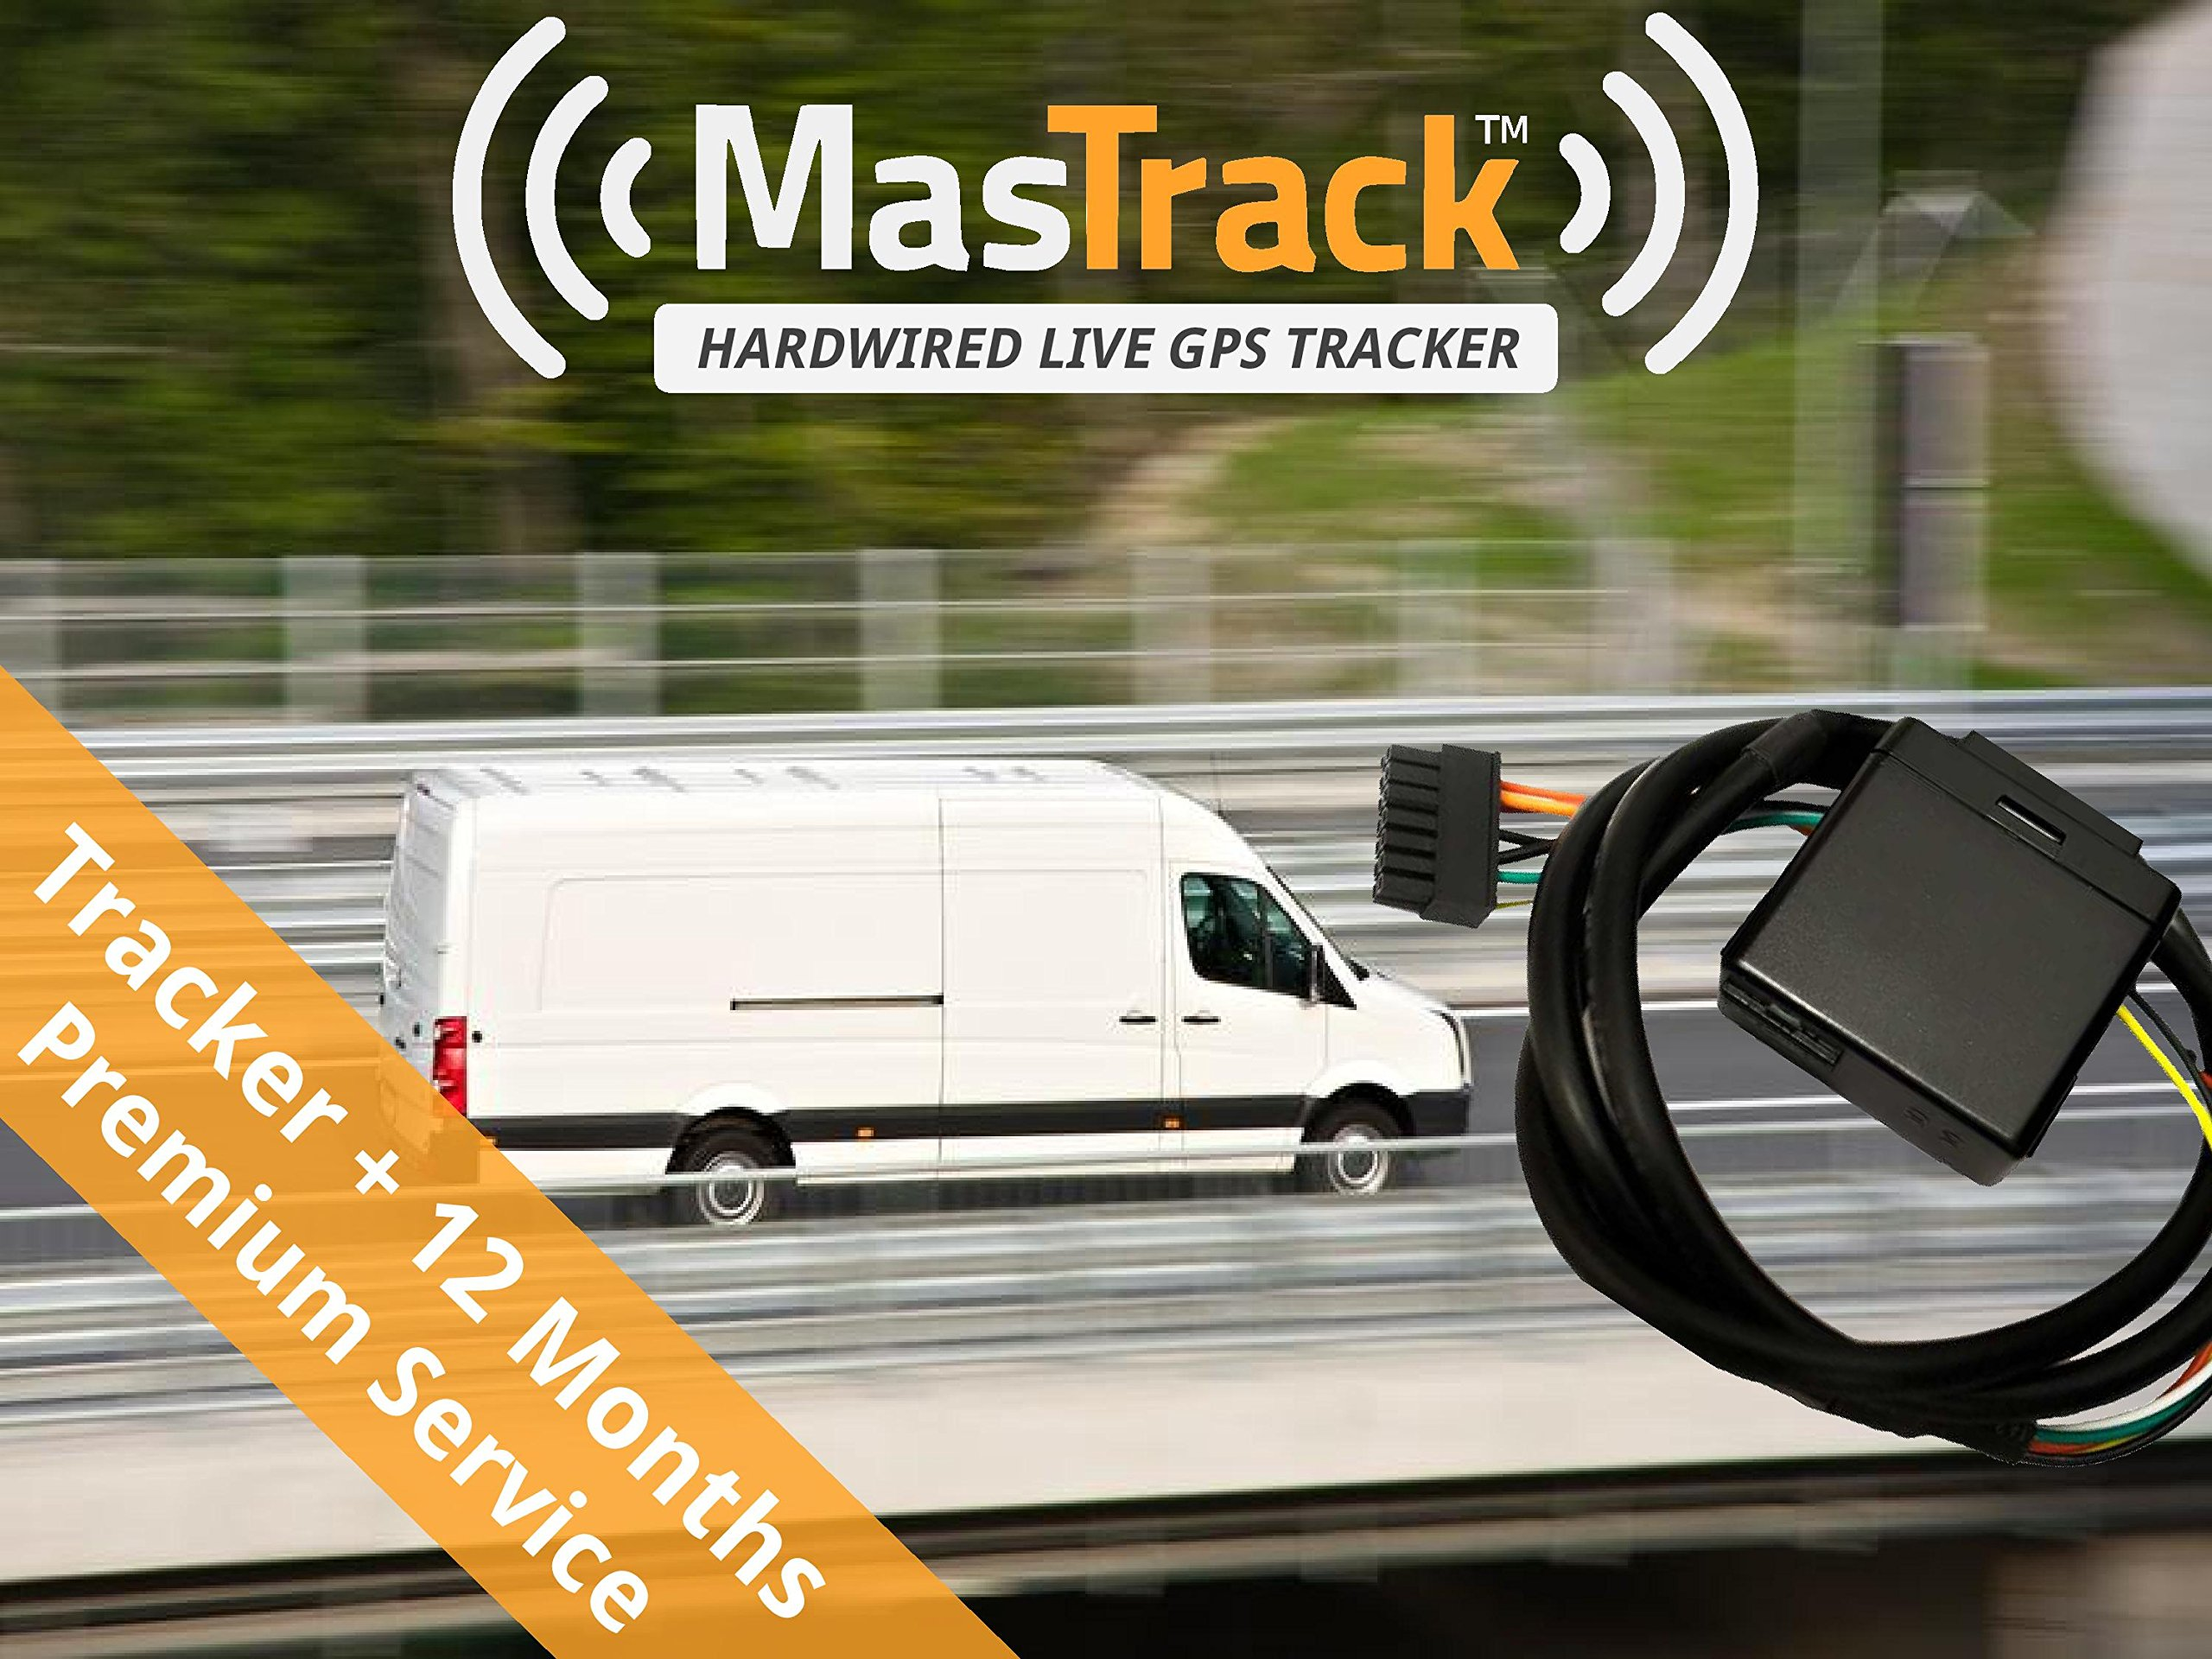 MasTrack Hardwired Real Time GPS Vehicle Tracker includes 12 Months of Premium Service